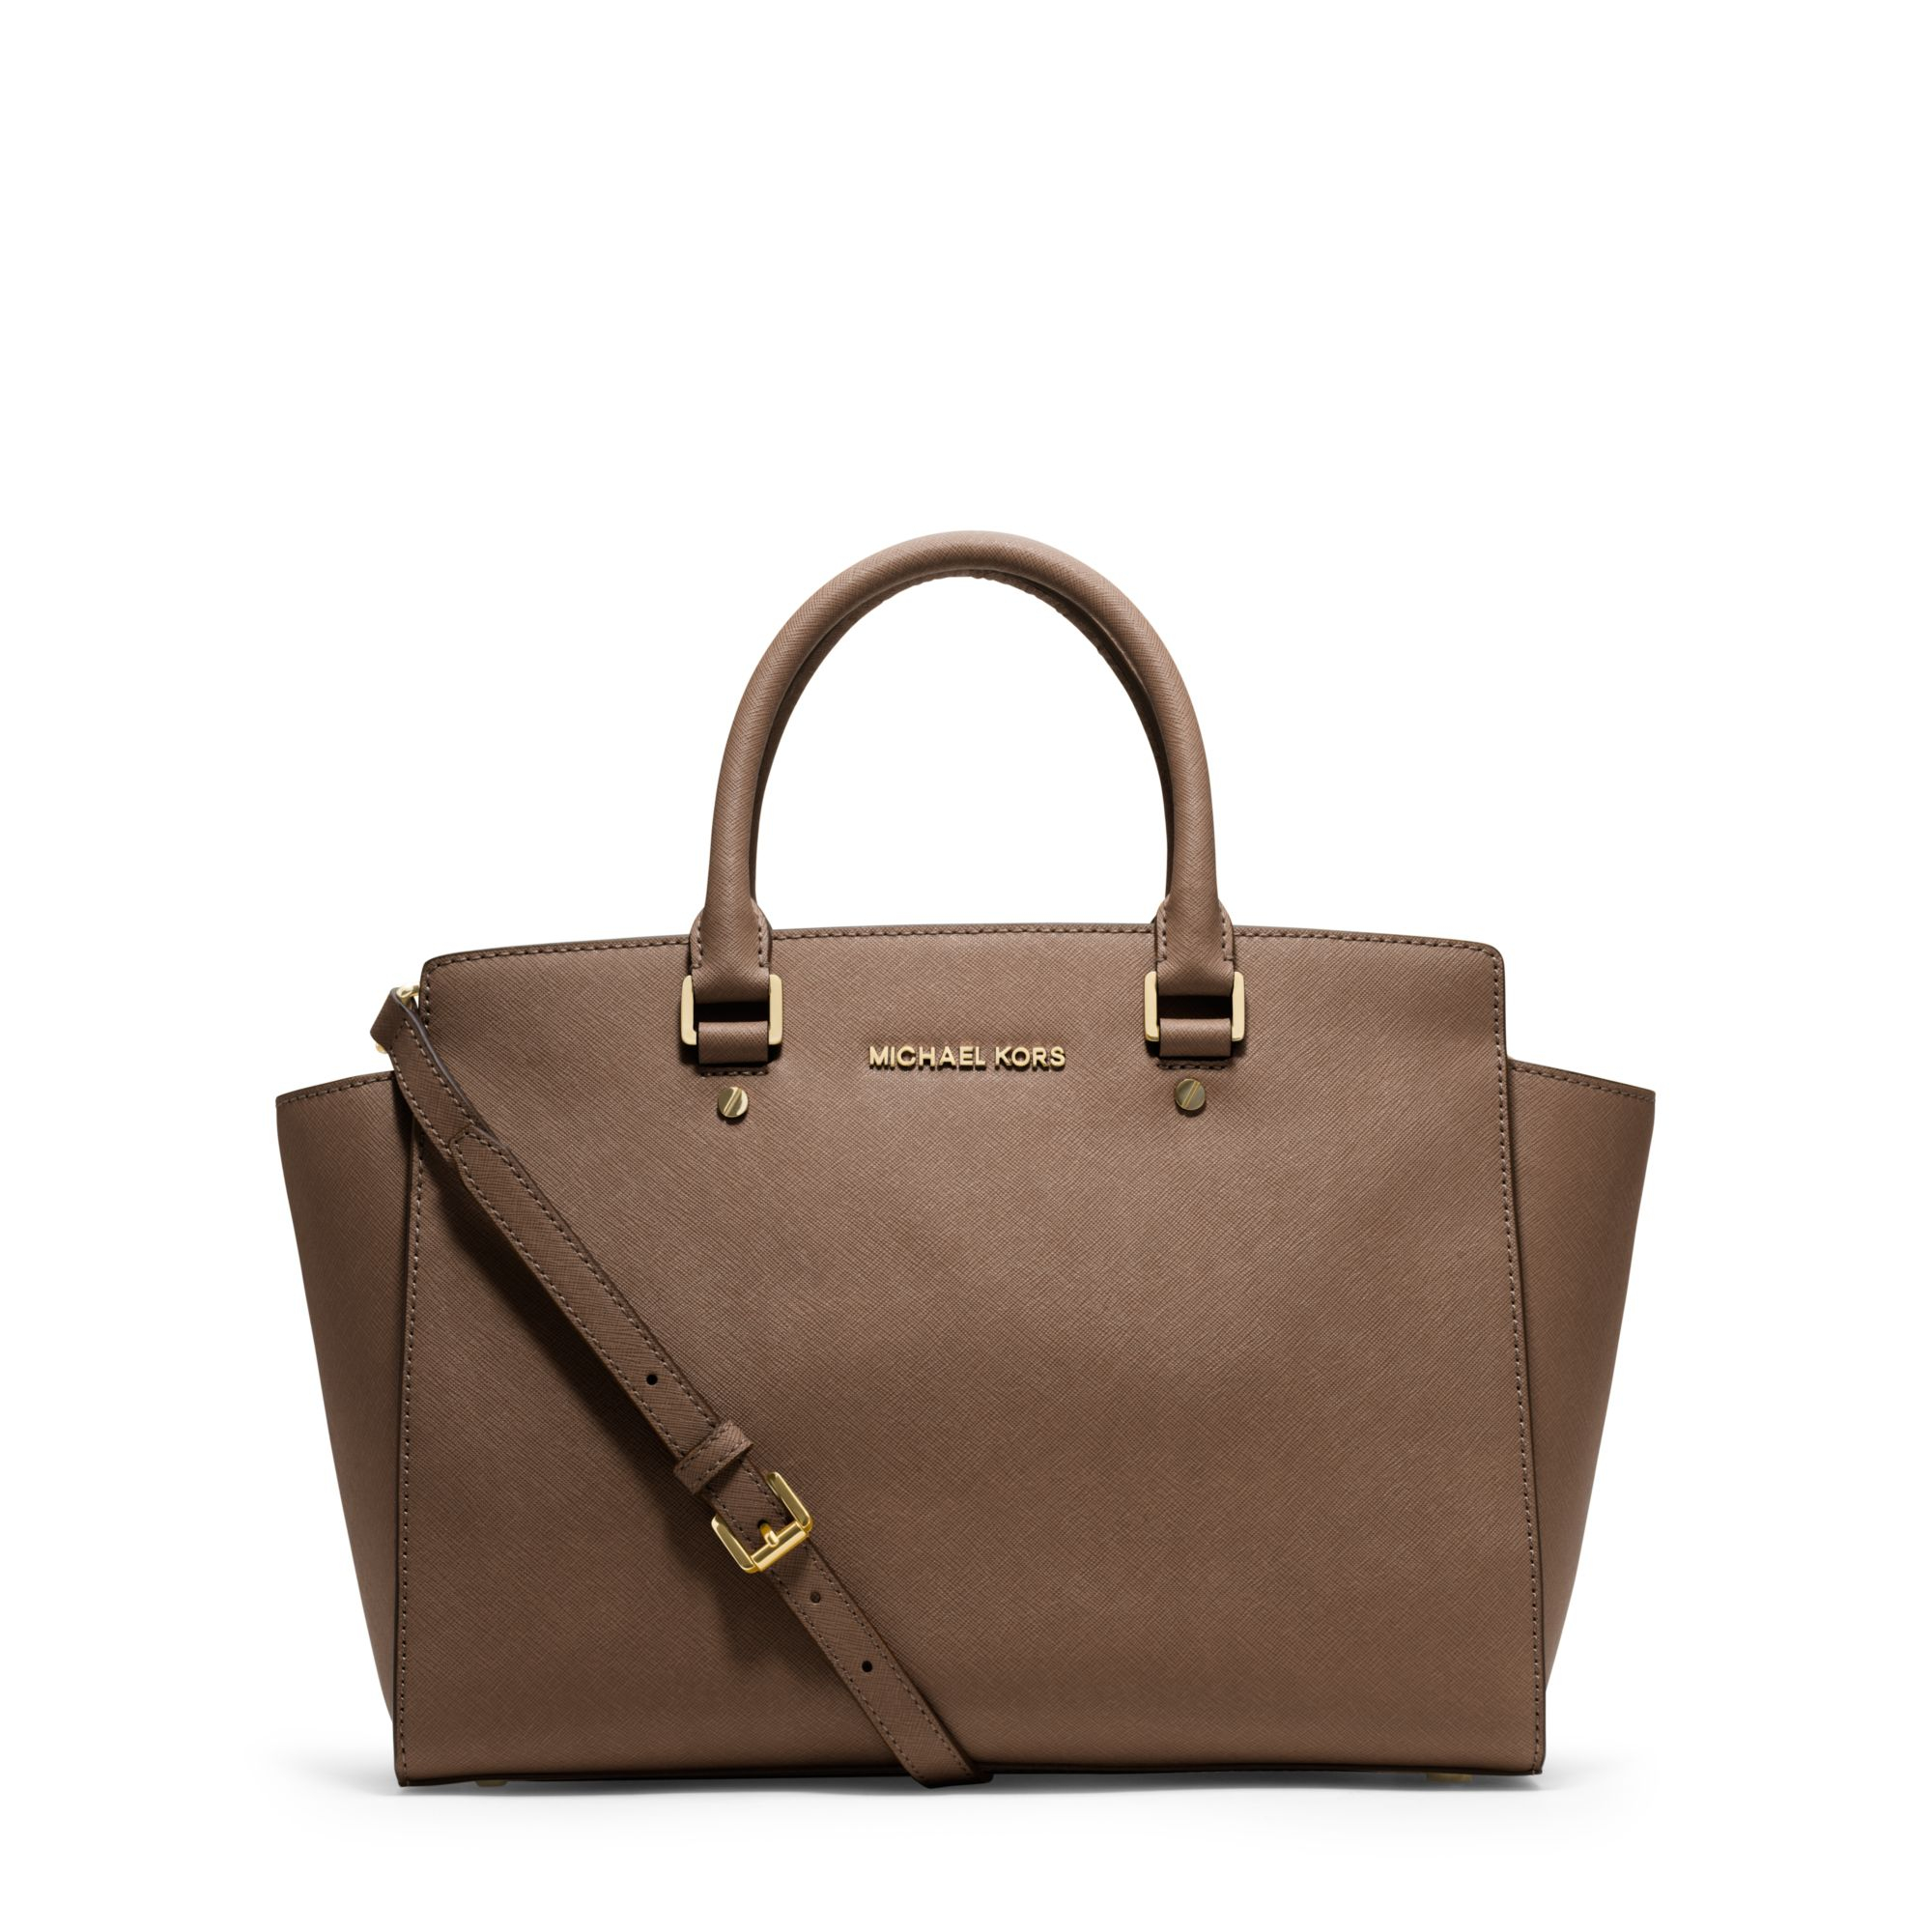 michael kors selma large saffiano leather satchel in brown dark dune lyst. Black Bedroom Furniture Sets. Home Design Ideas